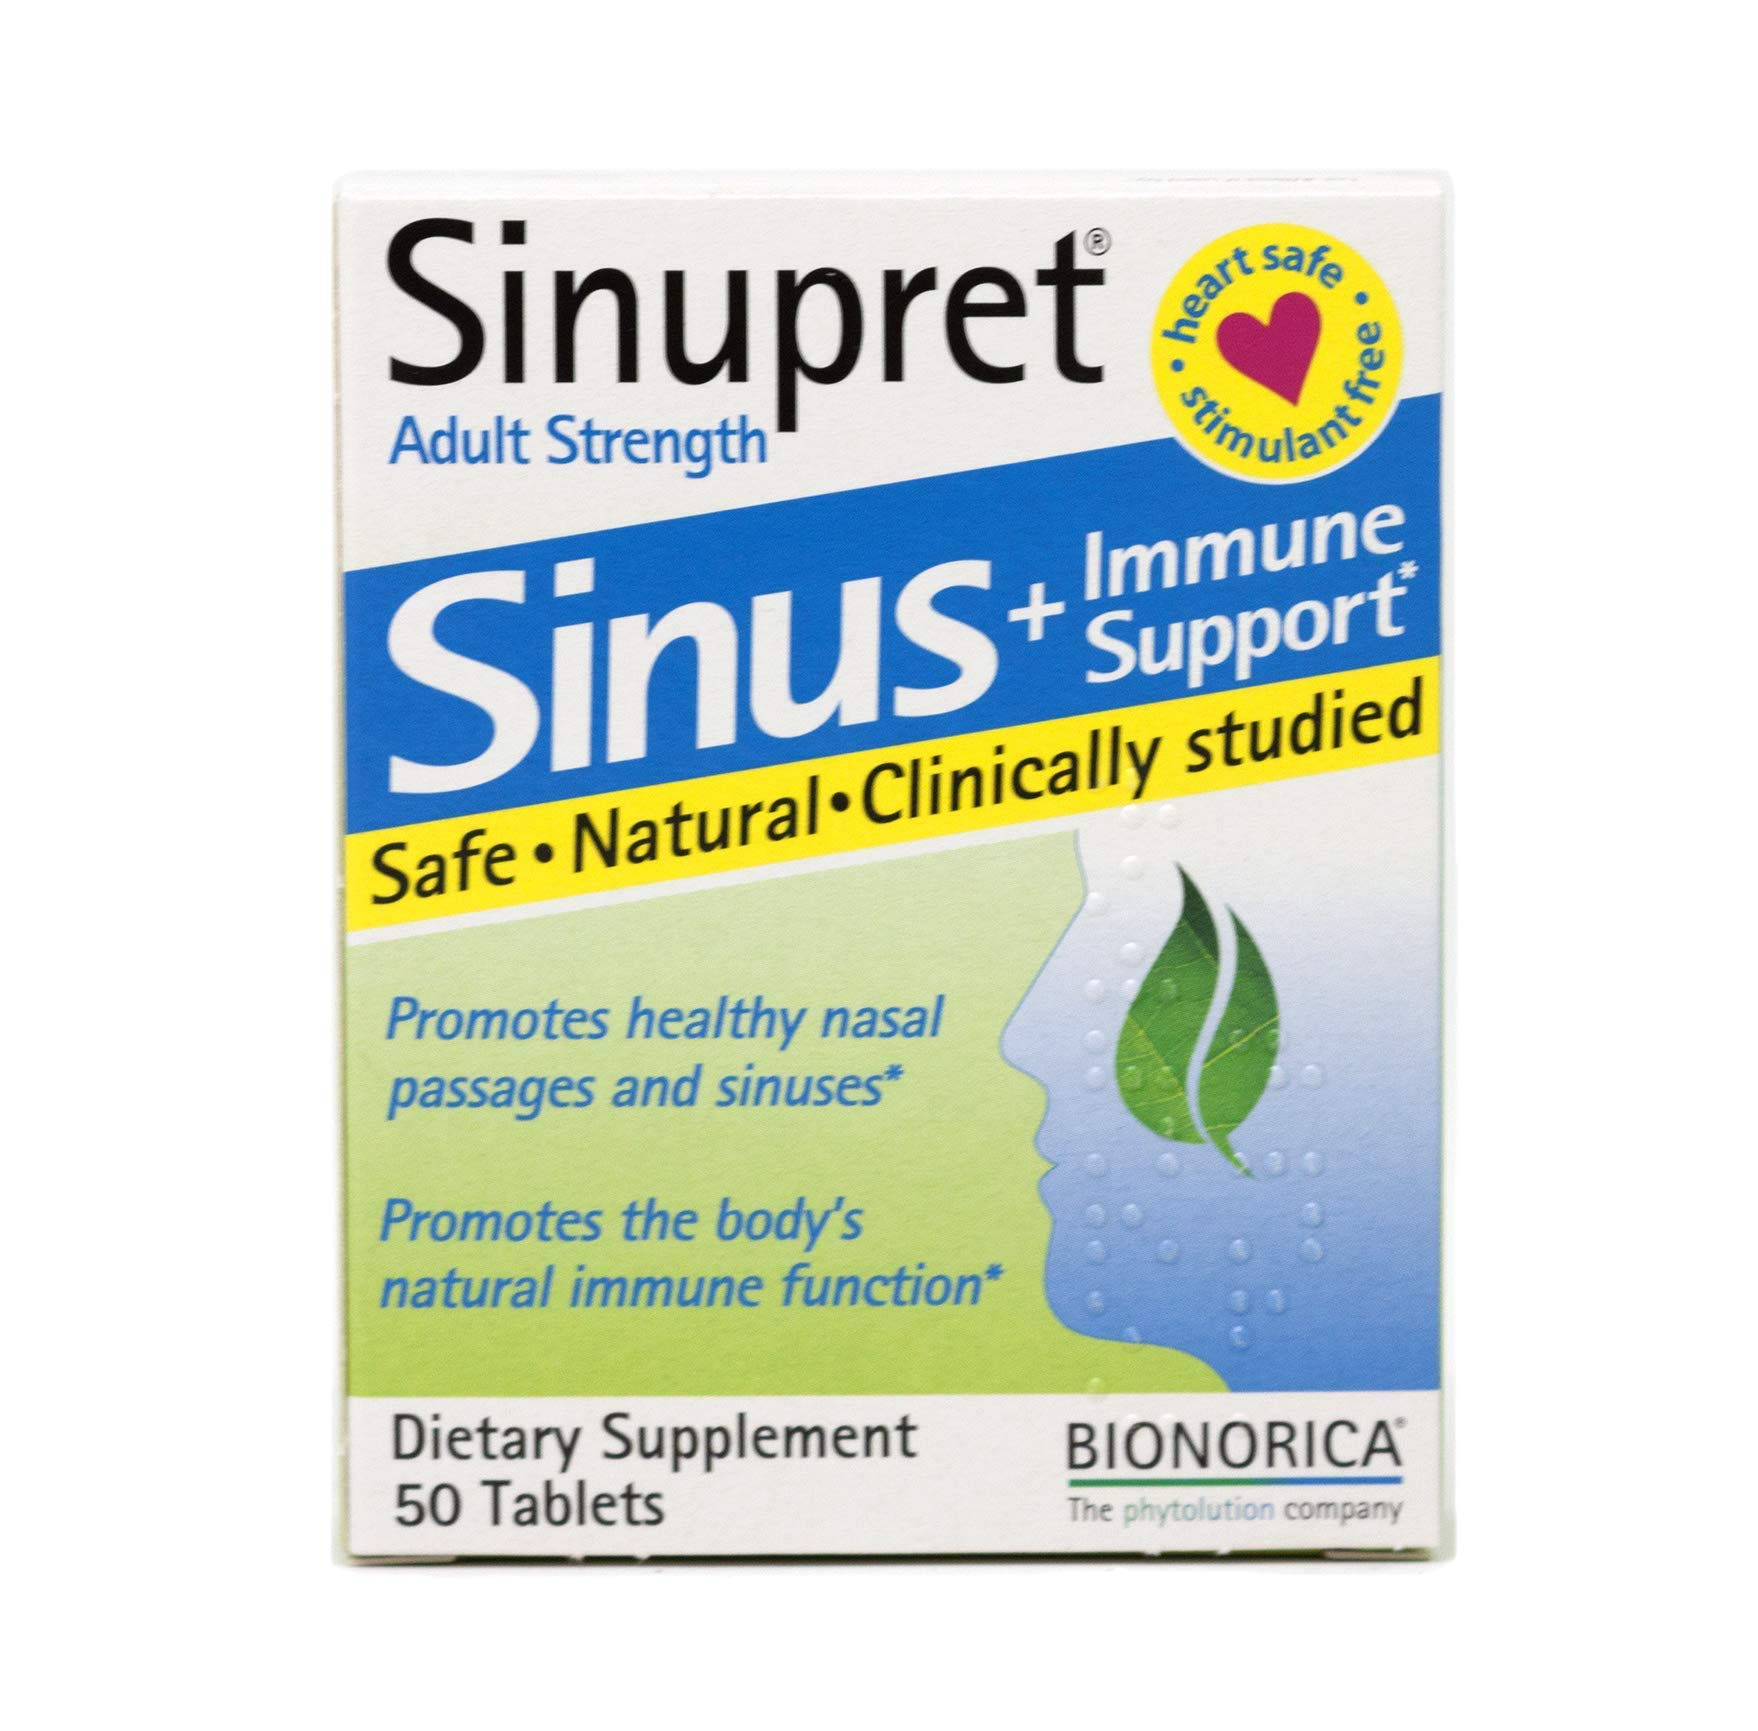 Bionorica: Sinupret Adult tabs, 50 tabs (2 pack) by Bionorica the phytolution company